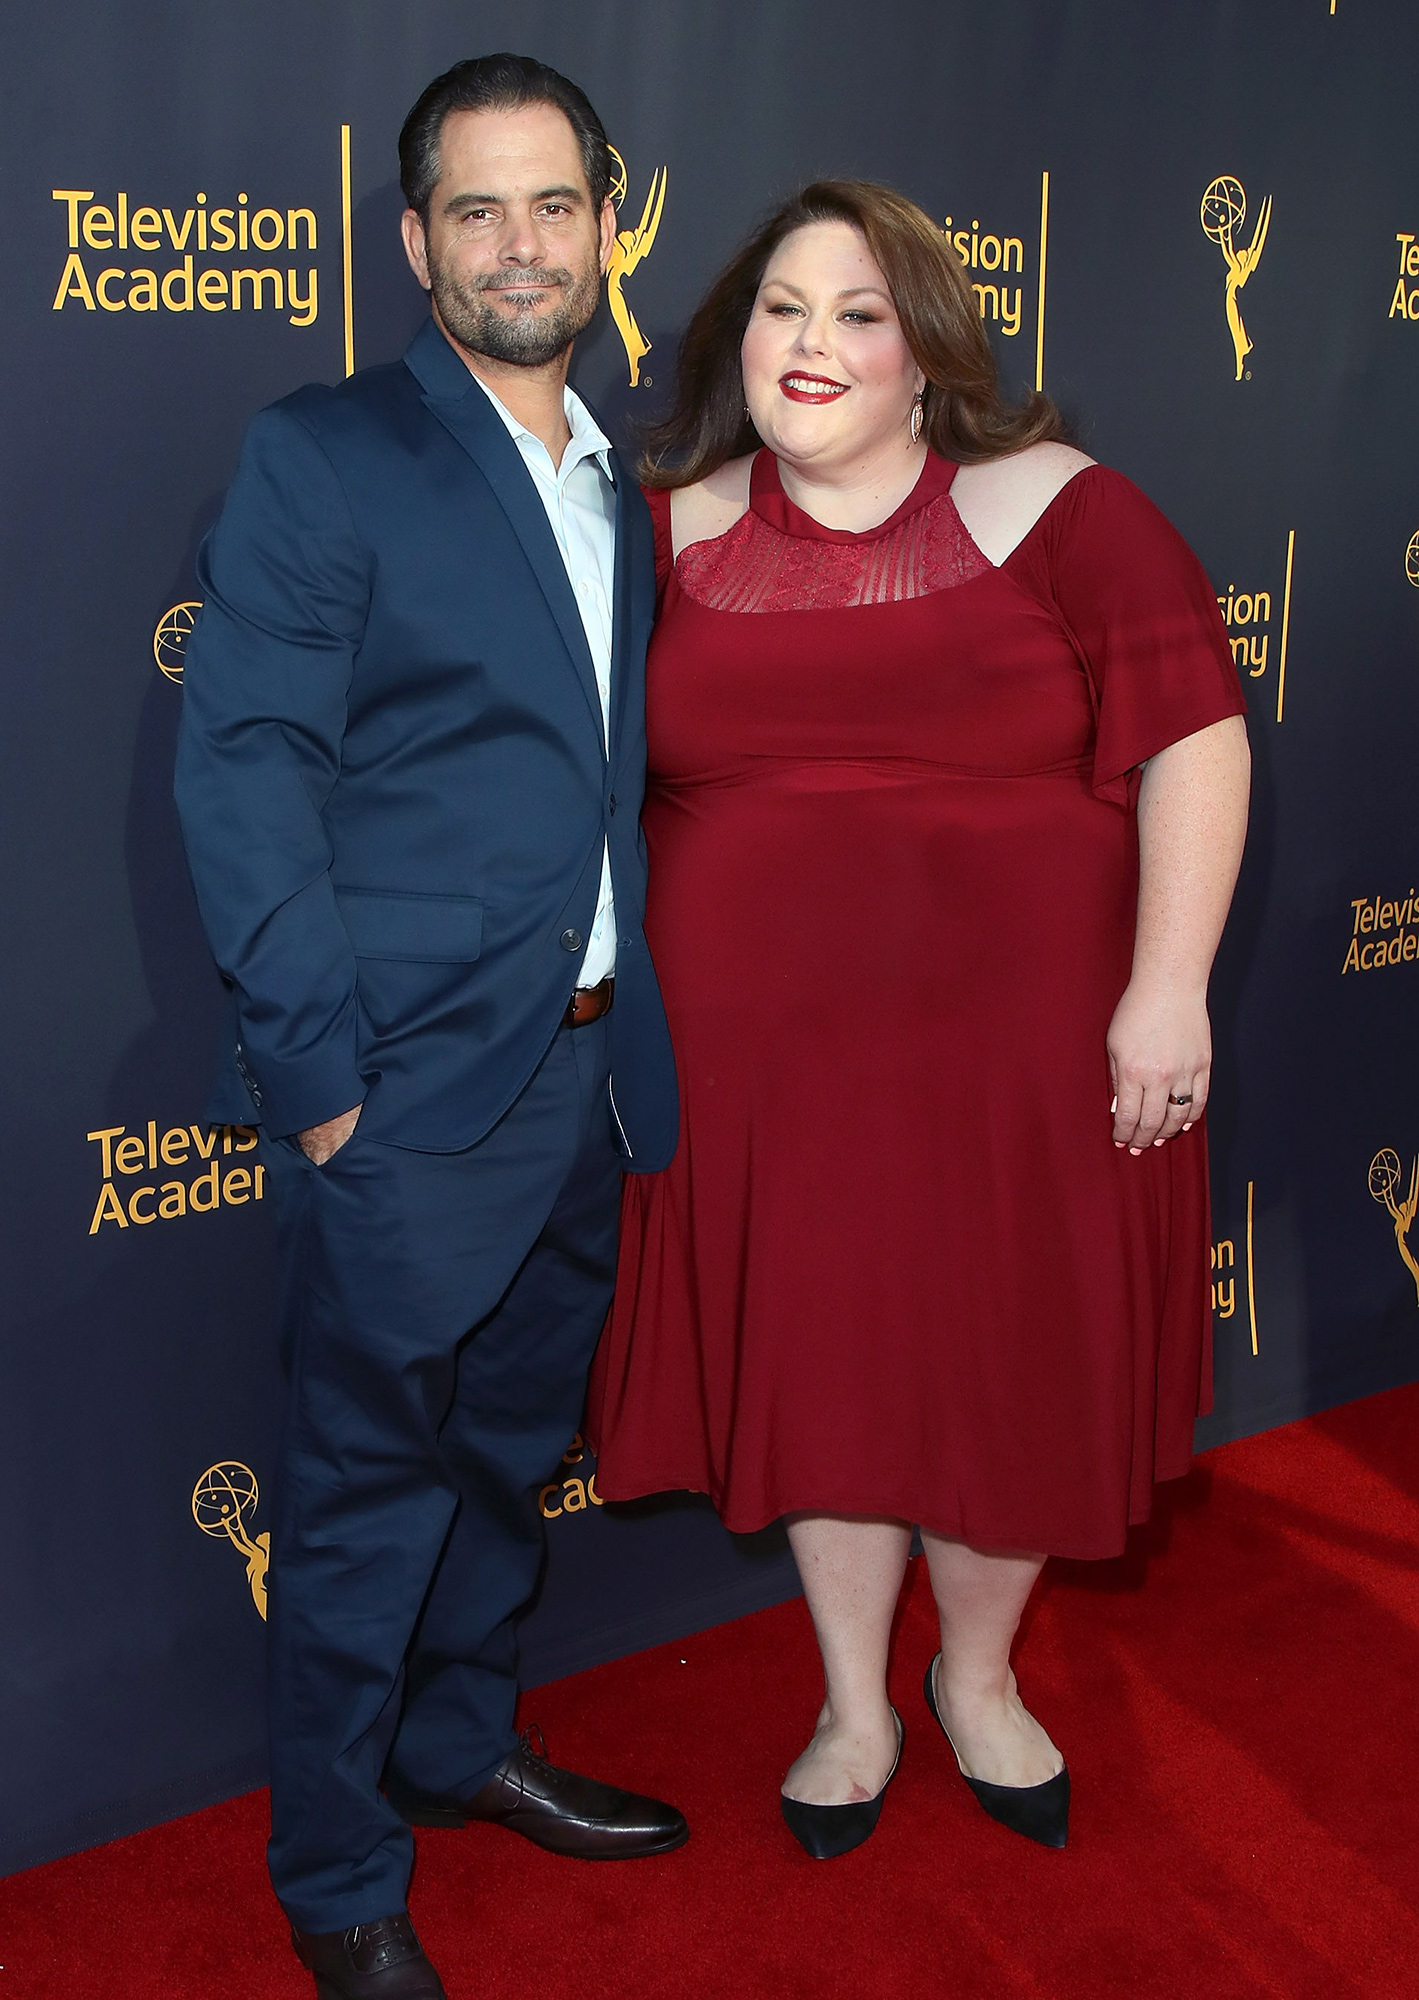 Television Academy Hosts Words + Music